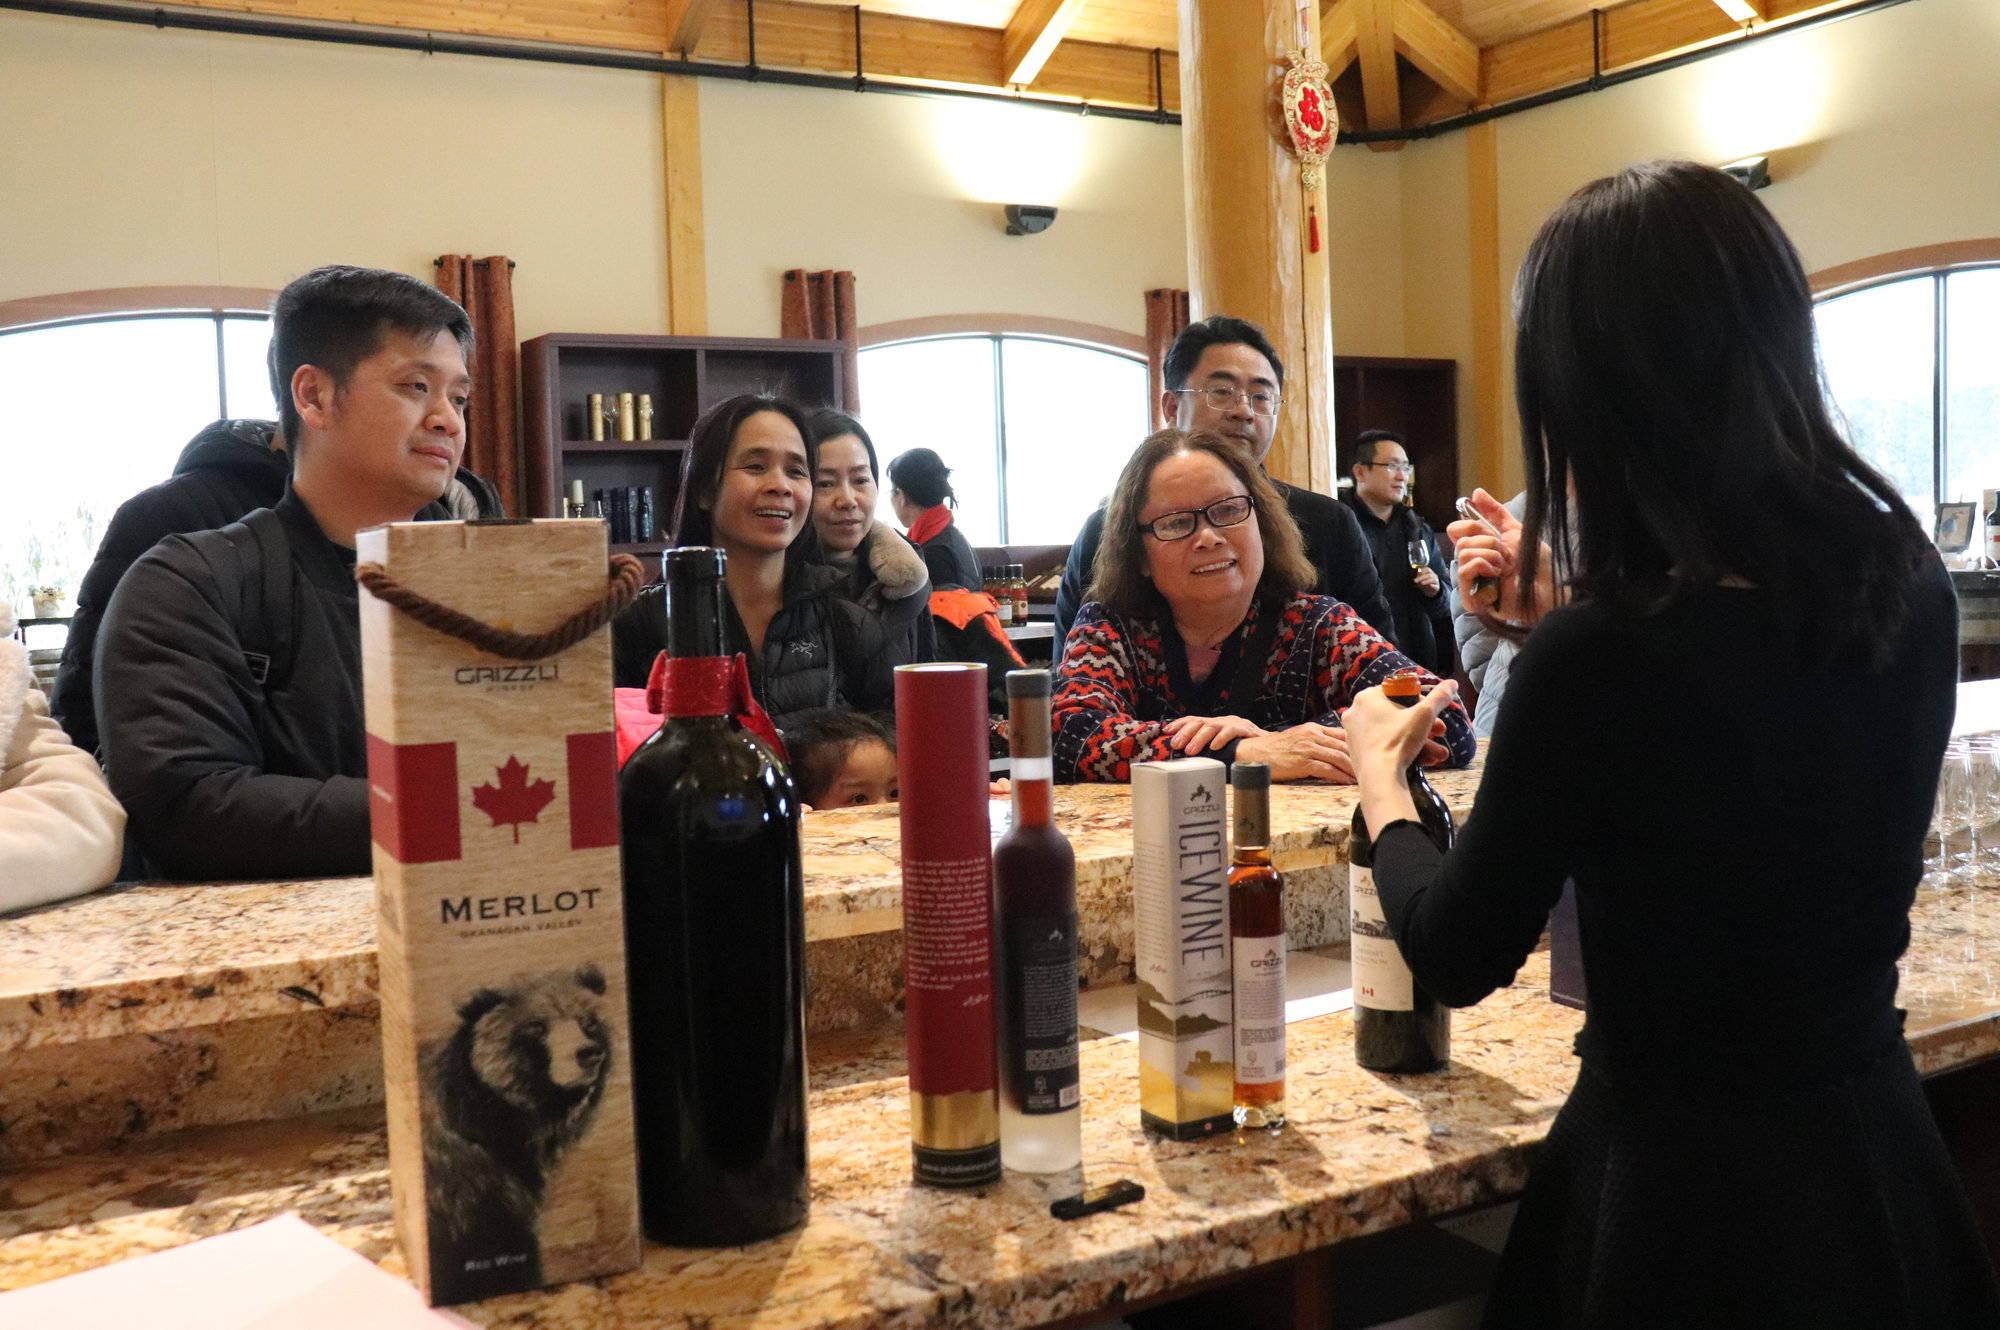 Tourists learn about icewines and table wines produced in the Okanagan on Jan. 24, 2020. (Twila Amato - Black Press Media)